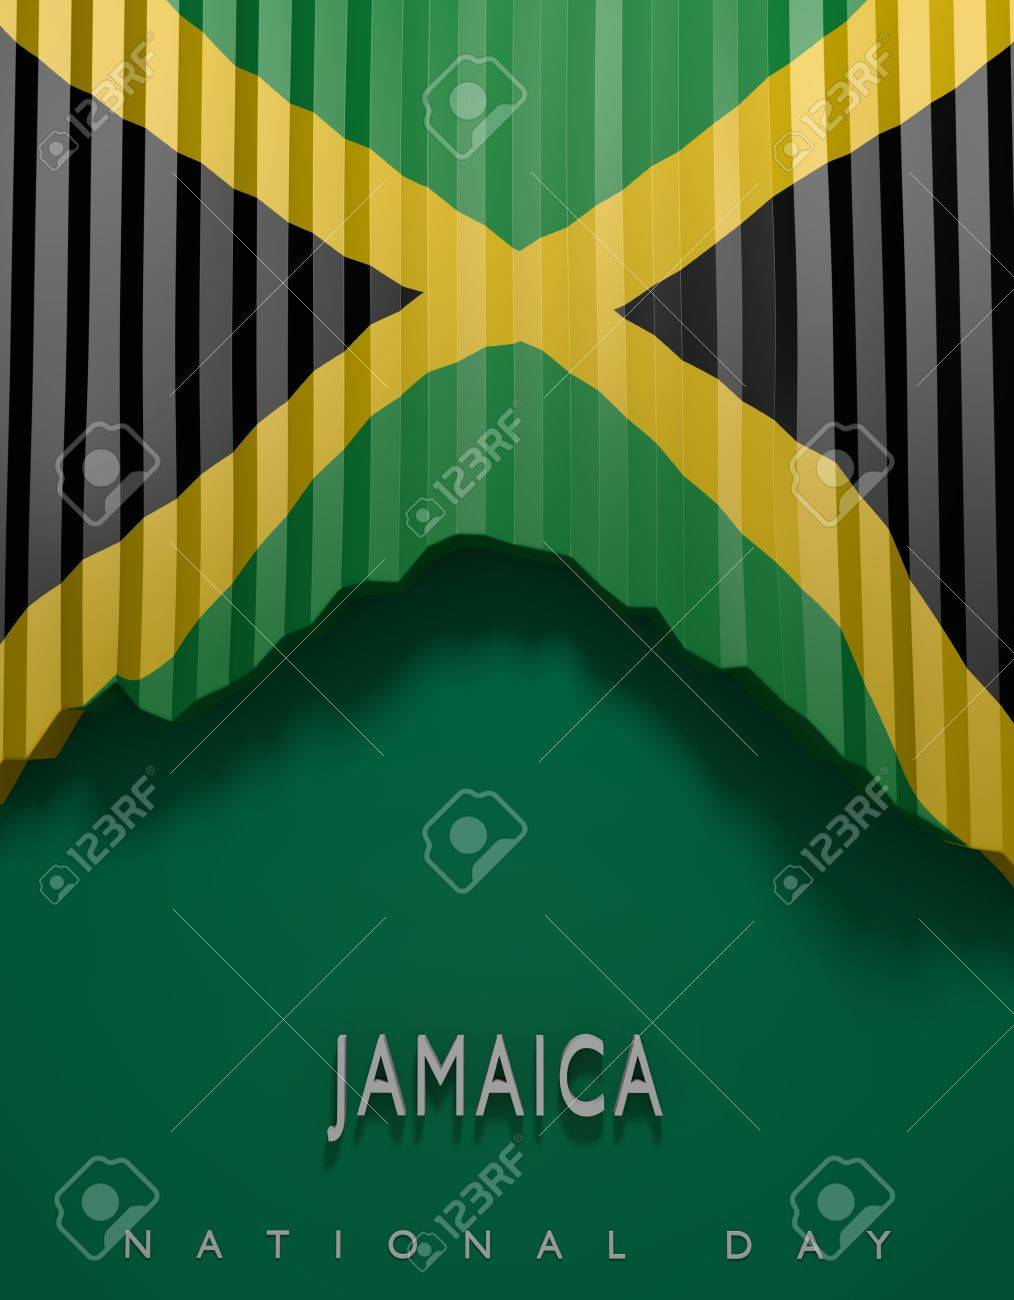 Flag Jamaican Colors Jamaica Flag 3d Render Stock Photo Picture